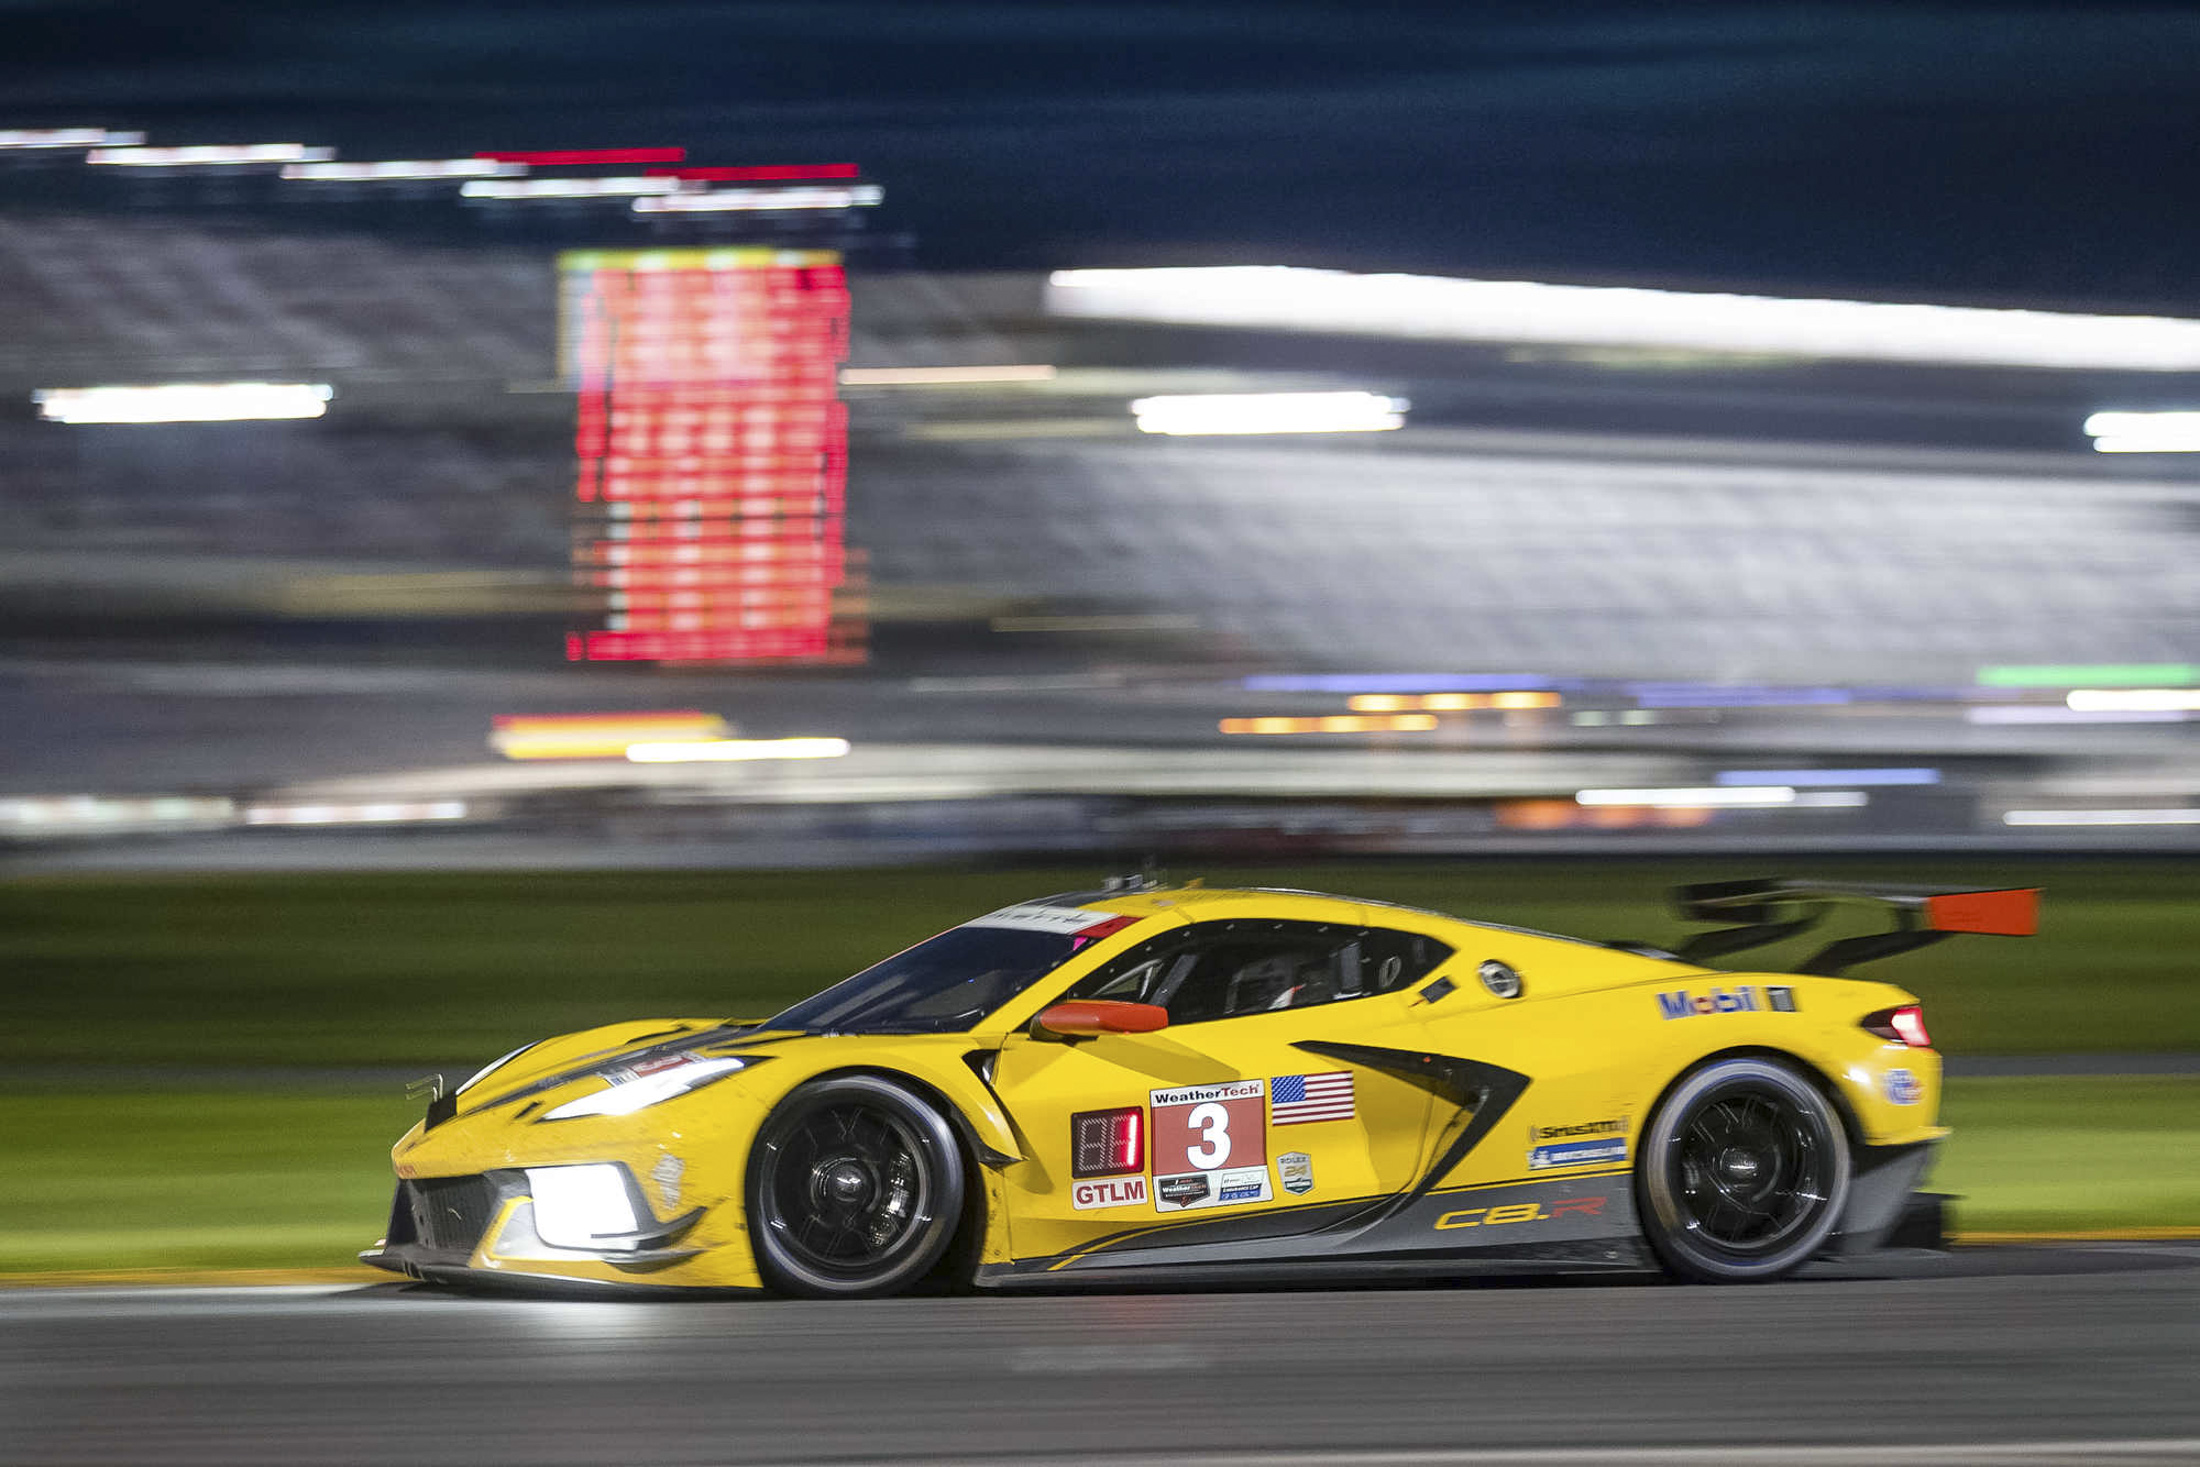 The #3 Mobil 1/SiriusXM Chevrolet Corvette C8.R driven by Antonio Garcia and Jordan Taylor races to victory in the GTLM class Saturday, July 4, 2020 during the 2020 IMSA WeatherTech SportsCar Championship WeatherTech 240 on the Road Course at the Daytona International Speedway in Daytona Beach, Florida. This is the 100th IMSA victory for the team, during the second IMSA race of the season at an empty racetrack, as a result of  the COVID-19 pandemic. (Photo by Richard Prince for Chevy Racing)